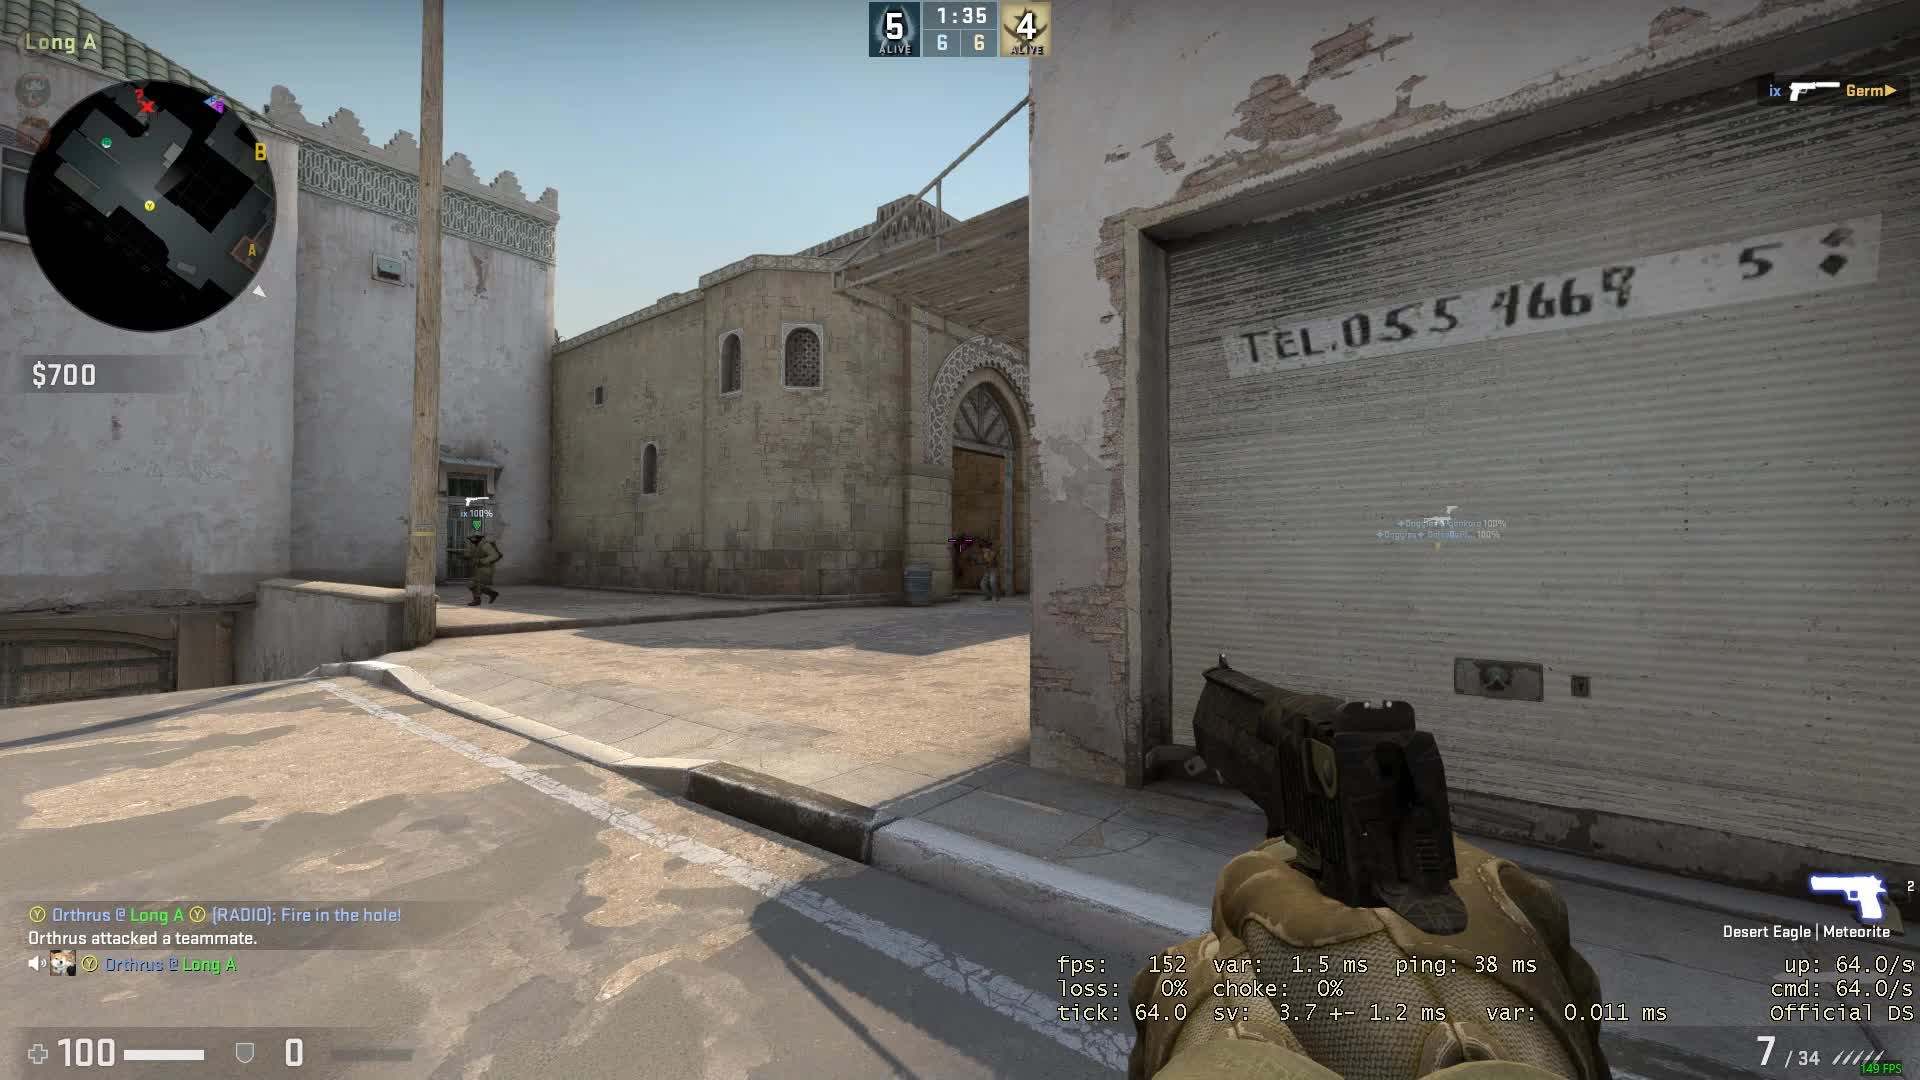 Vlc Record 2018 07 15 11 H 47 M 44 S Counter Strike Global Offensive 2018 07 14 20 25 14 08 Dvr Mp 4